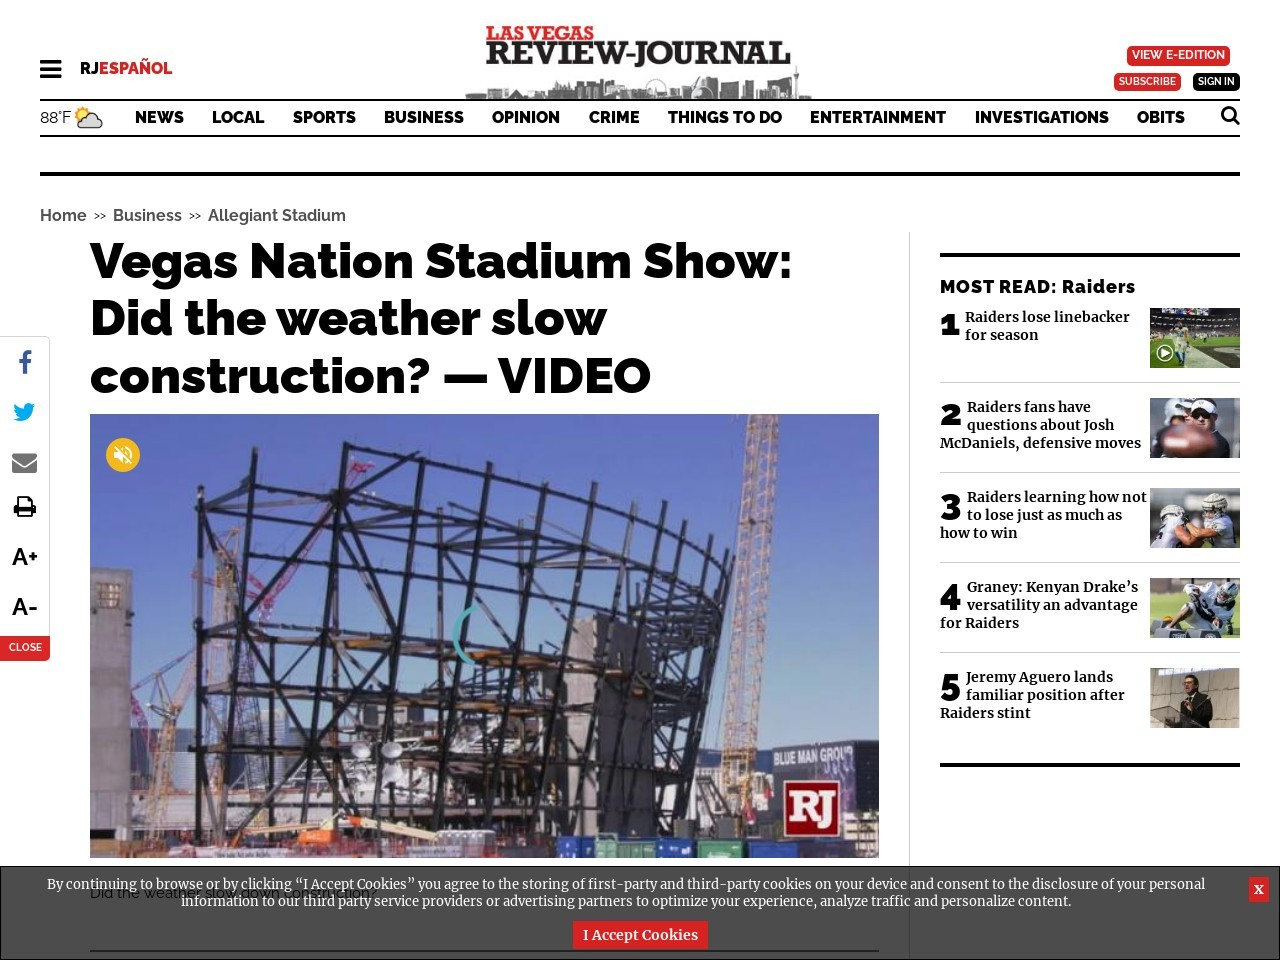 Vegas Nation Stadium Show: Did the weather slow construction? — VIDEO